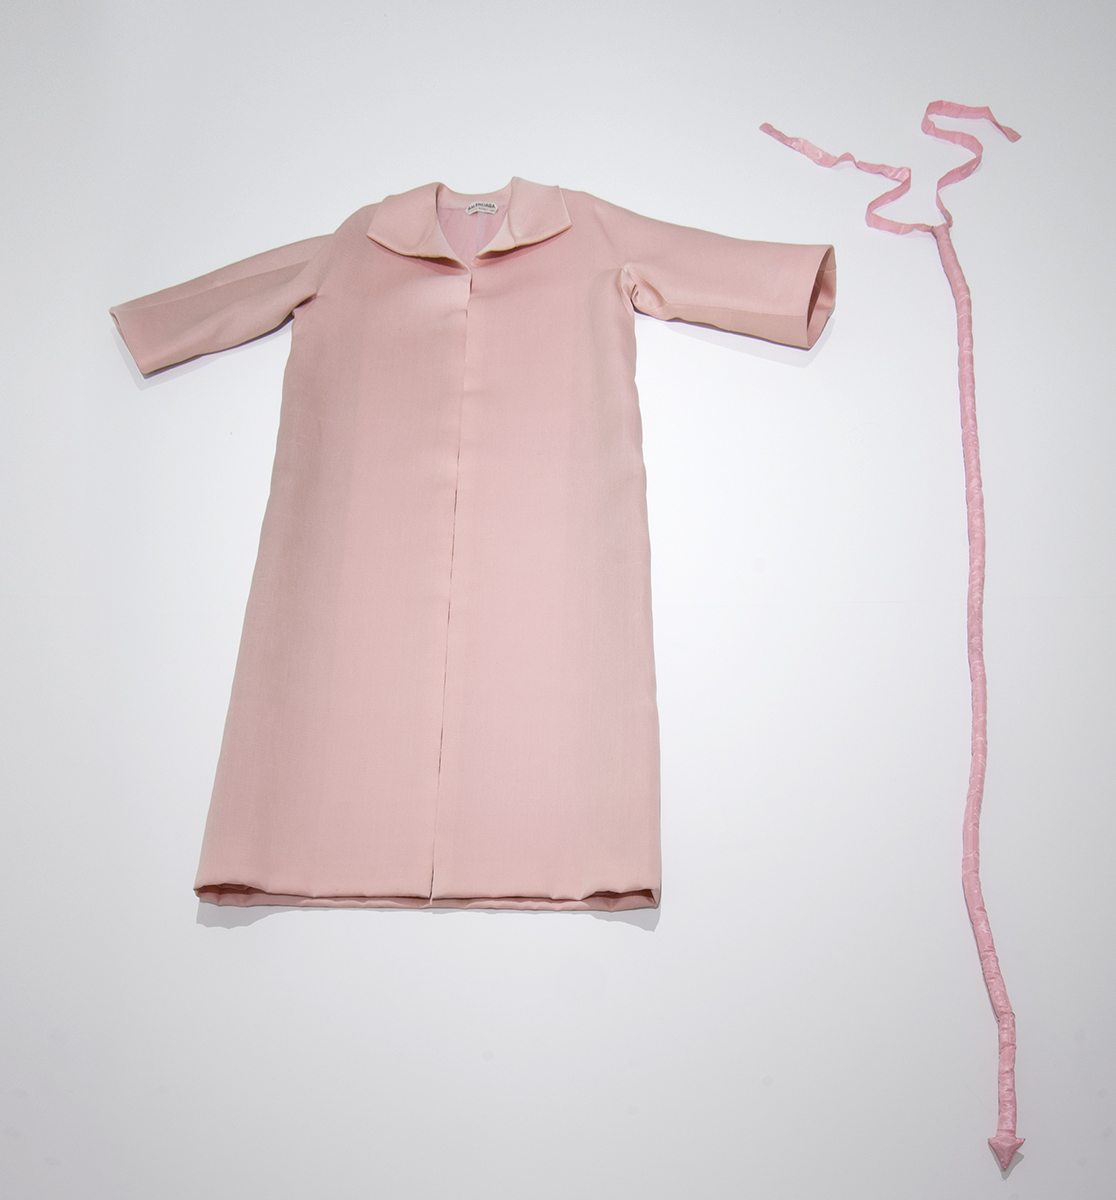 LEFT TO RIGHT:  Cristobal Balenciaga. Evening coat, ca. 1960, Pale pink silk shantung gazar The Ohio State University Historic Costume and Textiles Collection   James Lee Byars. Pink silk tail, 1970, pink silk Collection of Michael Lowe and Kimberly Klosterman